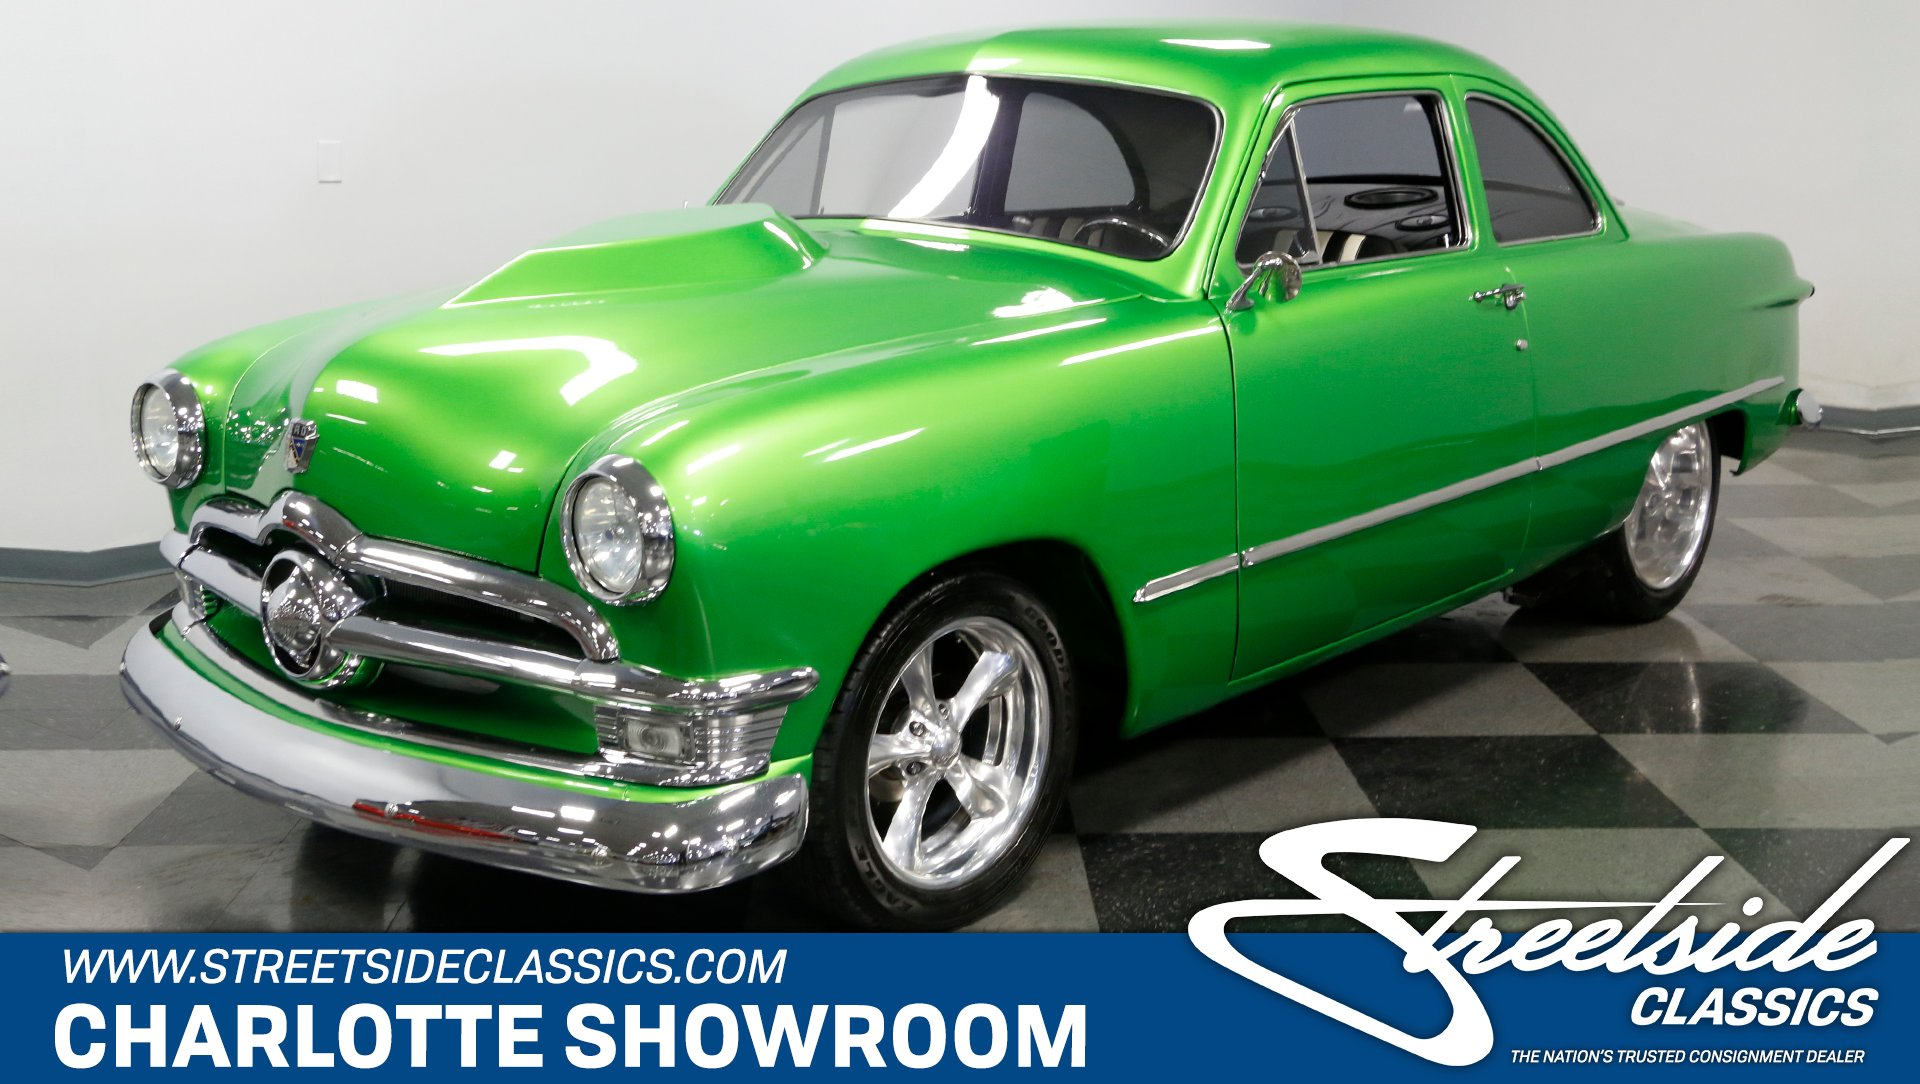 1950 ford business coupe pro street